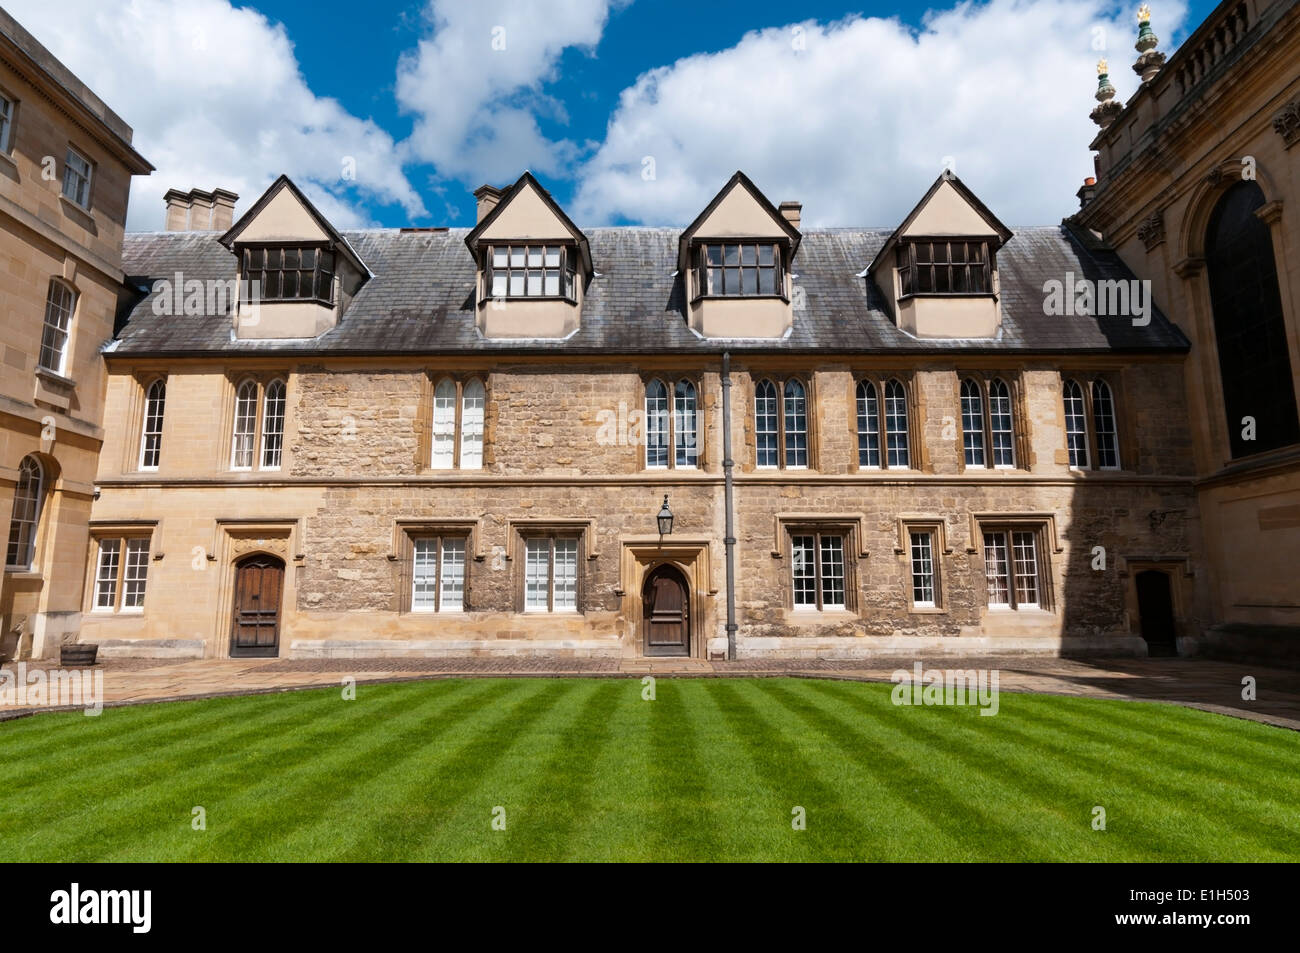 The Old Library in Durham Quadrangle, Trinity College, Oxford. - Stock Image